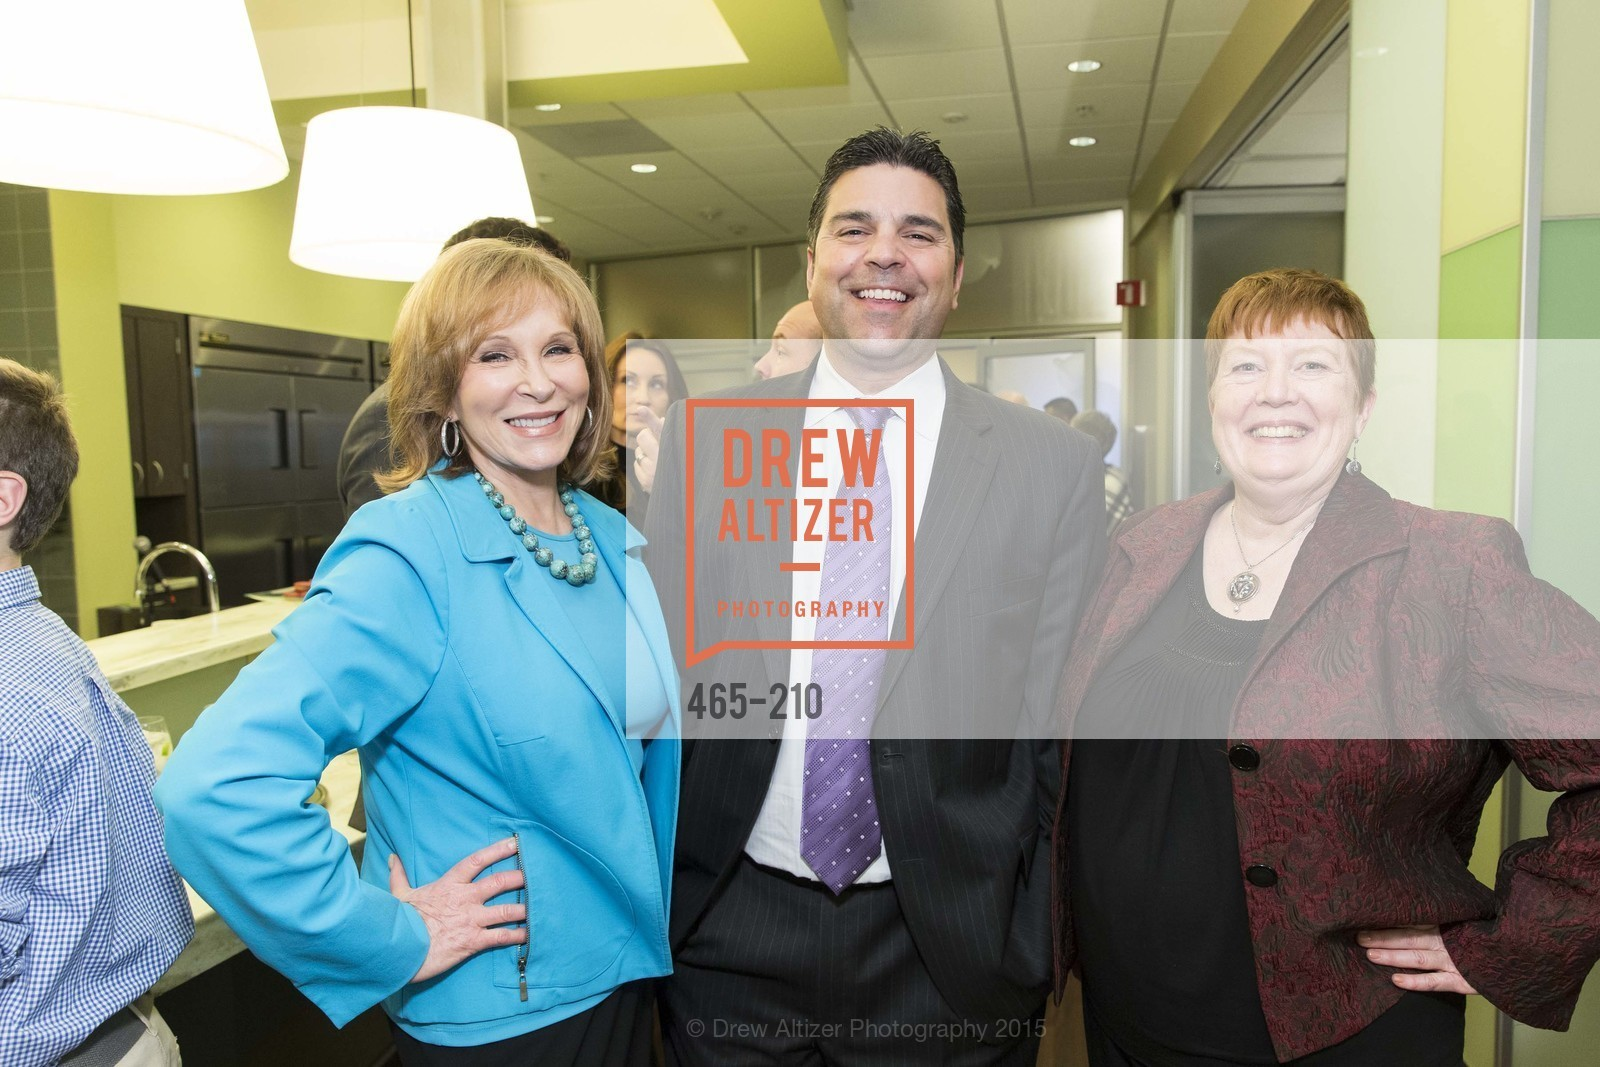 Mike Nicco, Cheryl Jennings, Lois Moore, Ronald McDonald House of San Francisco - Donor Appreciation Reception, UCSF Benioff Children's Hospital San Francisco, January 20th, 2015,Drew Altizer, Drew Altizer Photography, full-service agency, private events, San Francisco photographer, photographer california